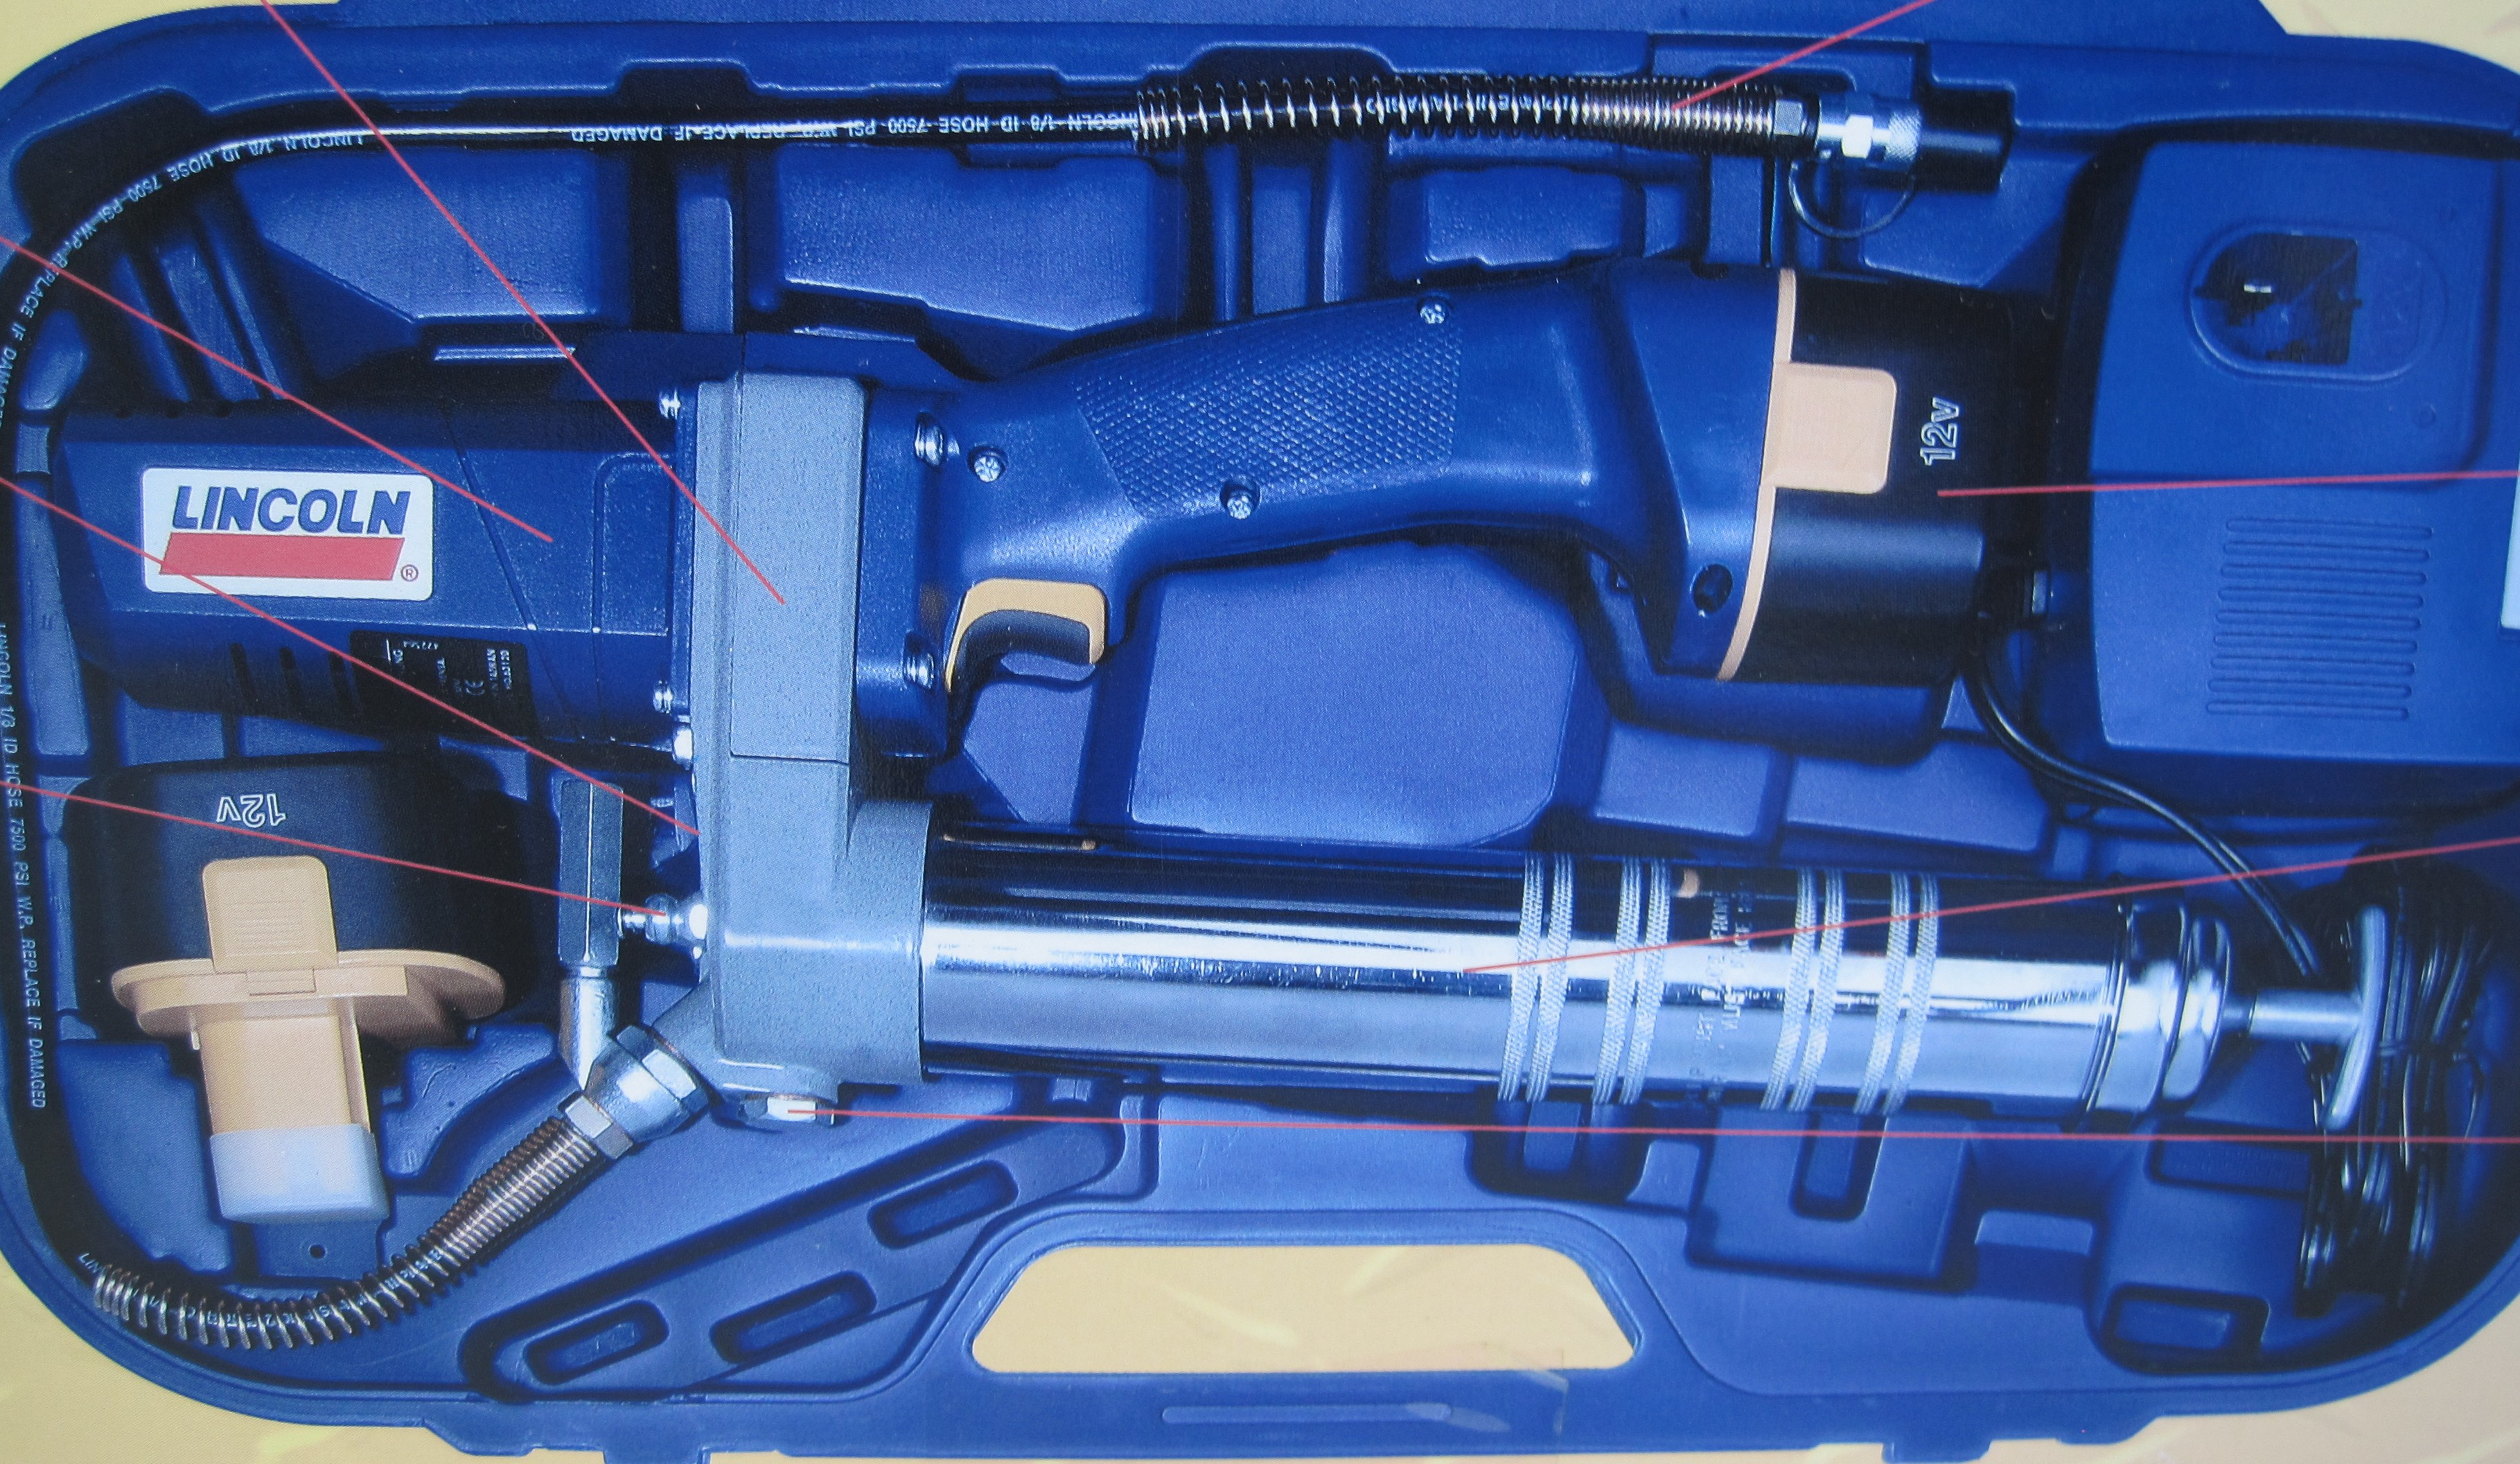 Lincoln 12-volt Cordless Rechargeable Grease Gun